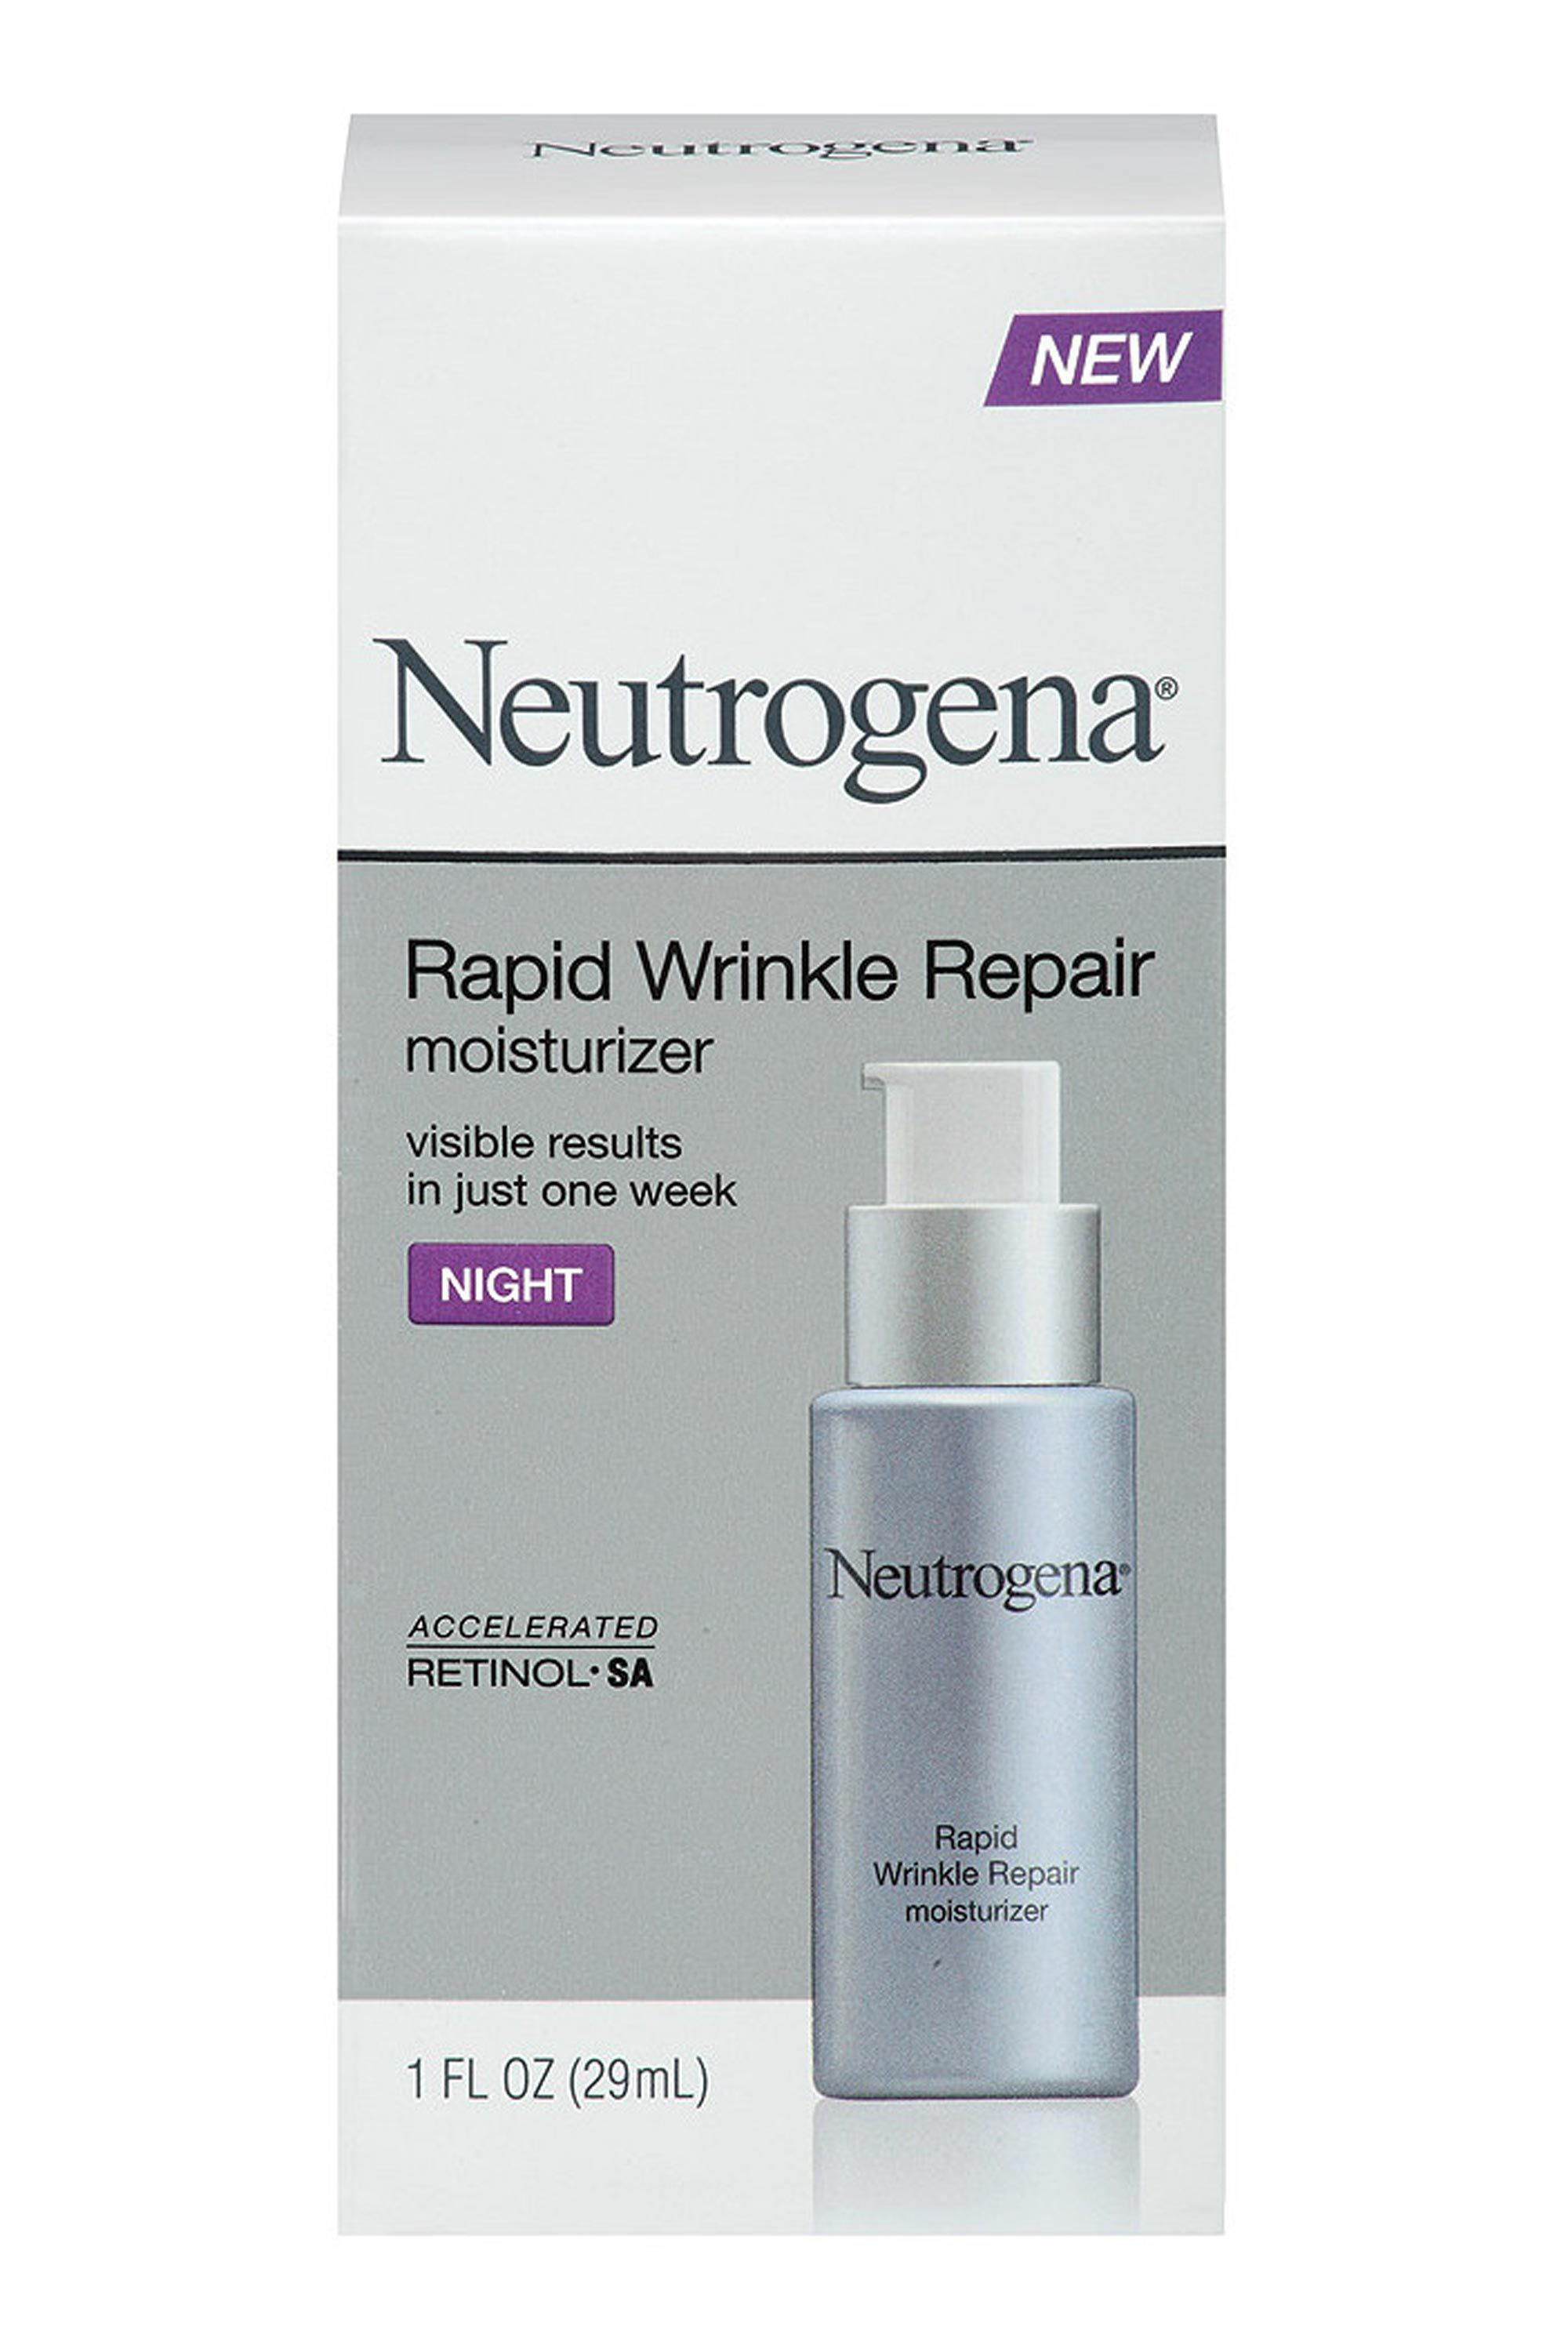 kem dưỡng da ban đêm Neutrogena Rapid Wrinkle Repair Night Moisturizer